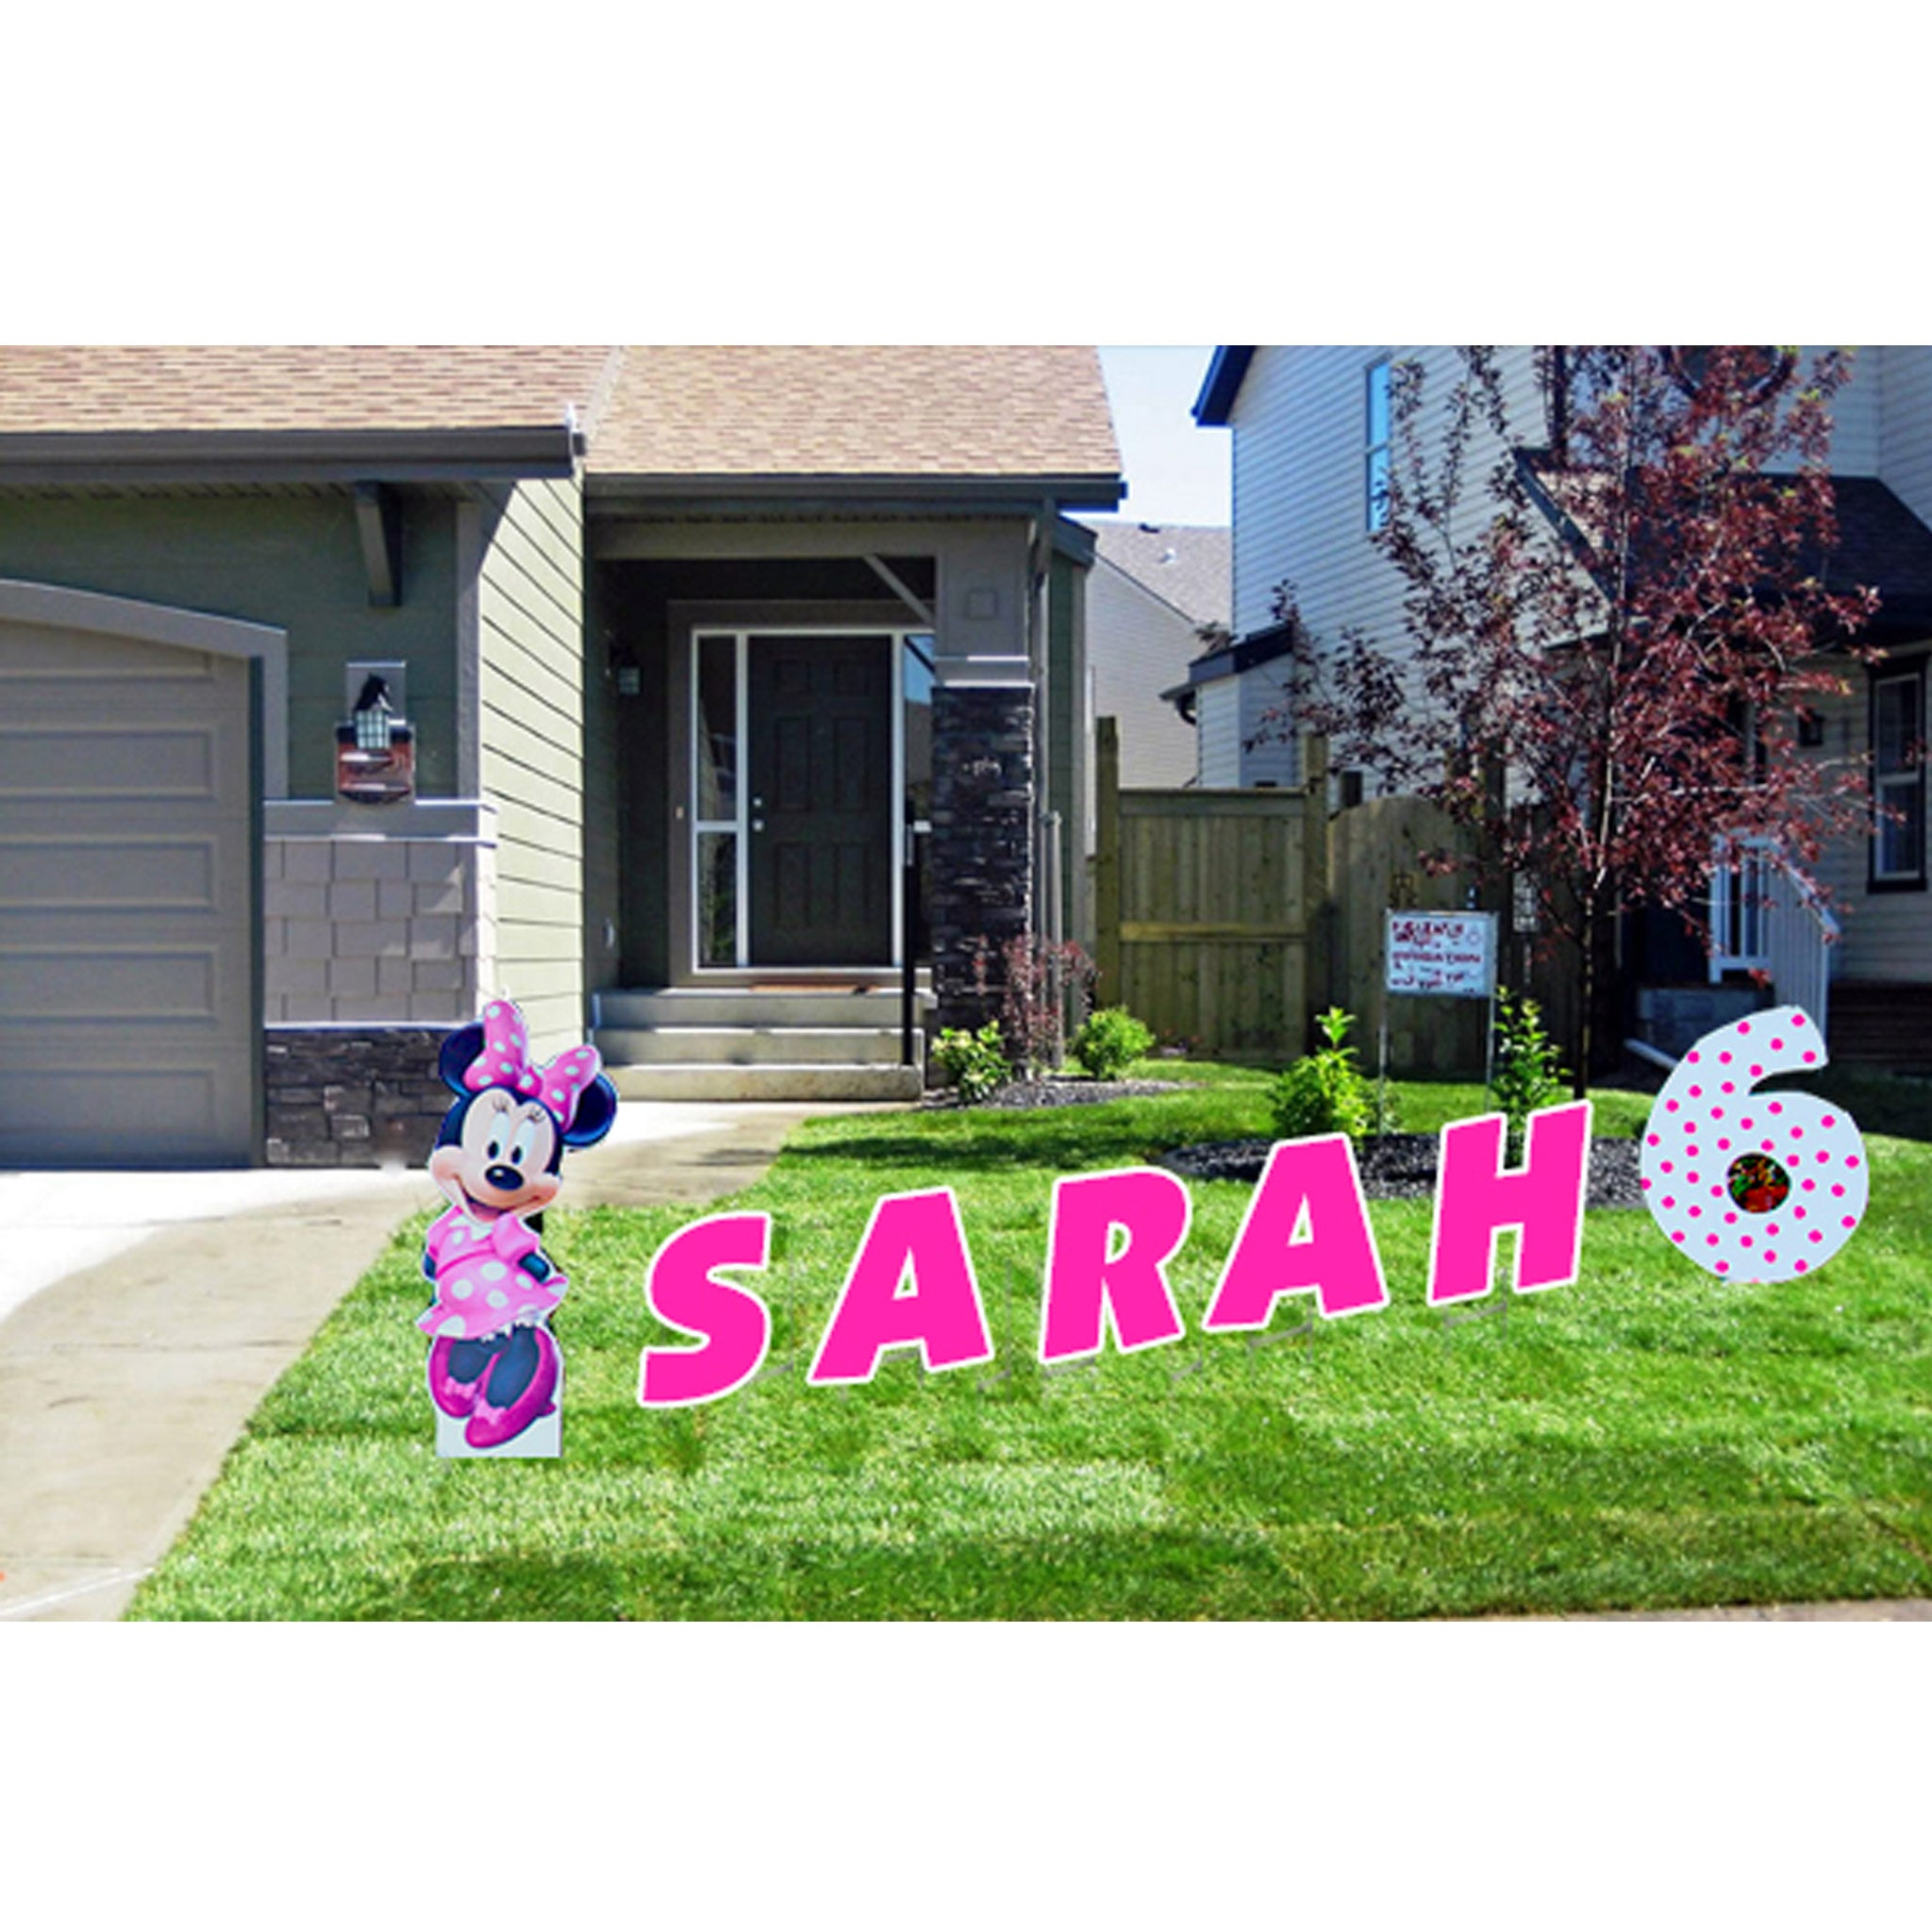 Minnie Mouse Yard Signs - Pink Lawn Letters in Front Yard